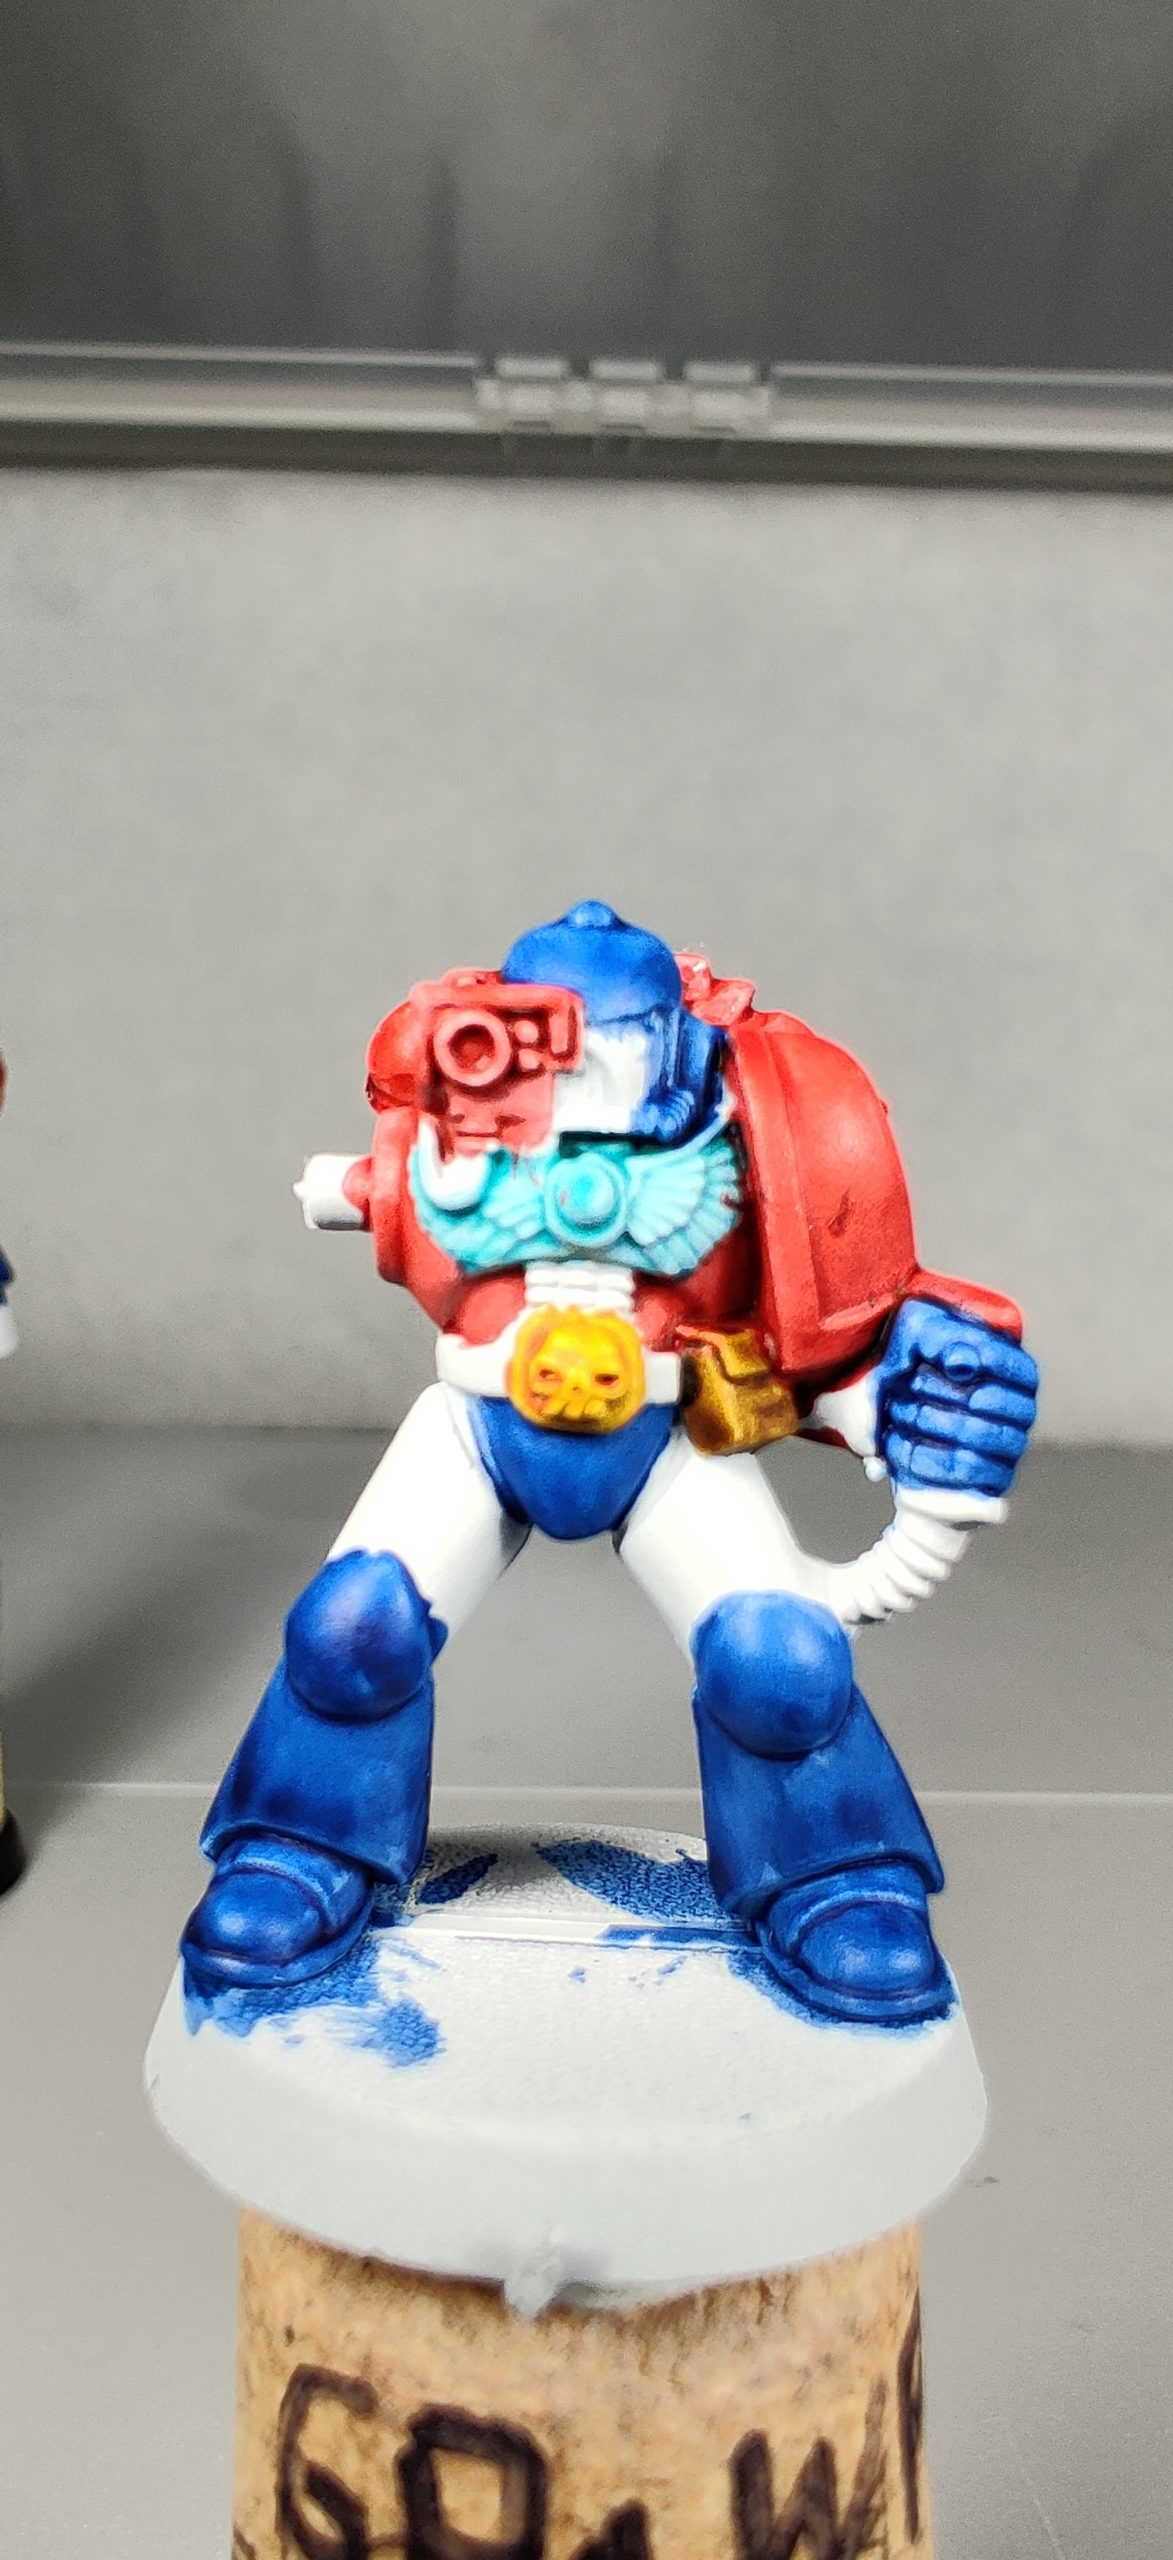 Third Fists of the Prime Marine test model.